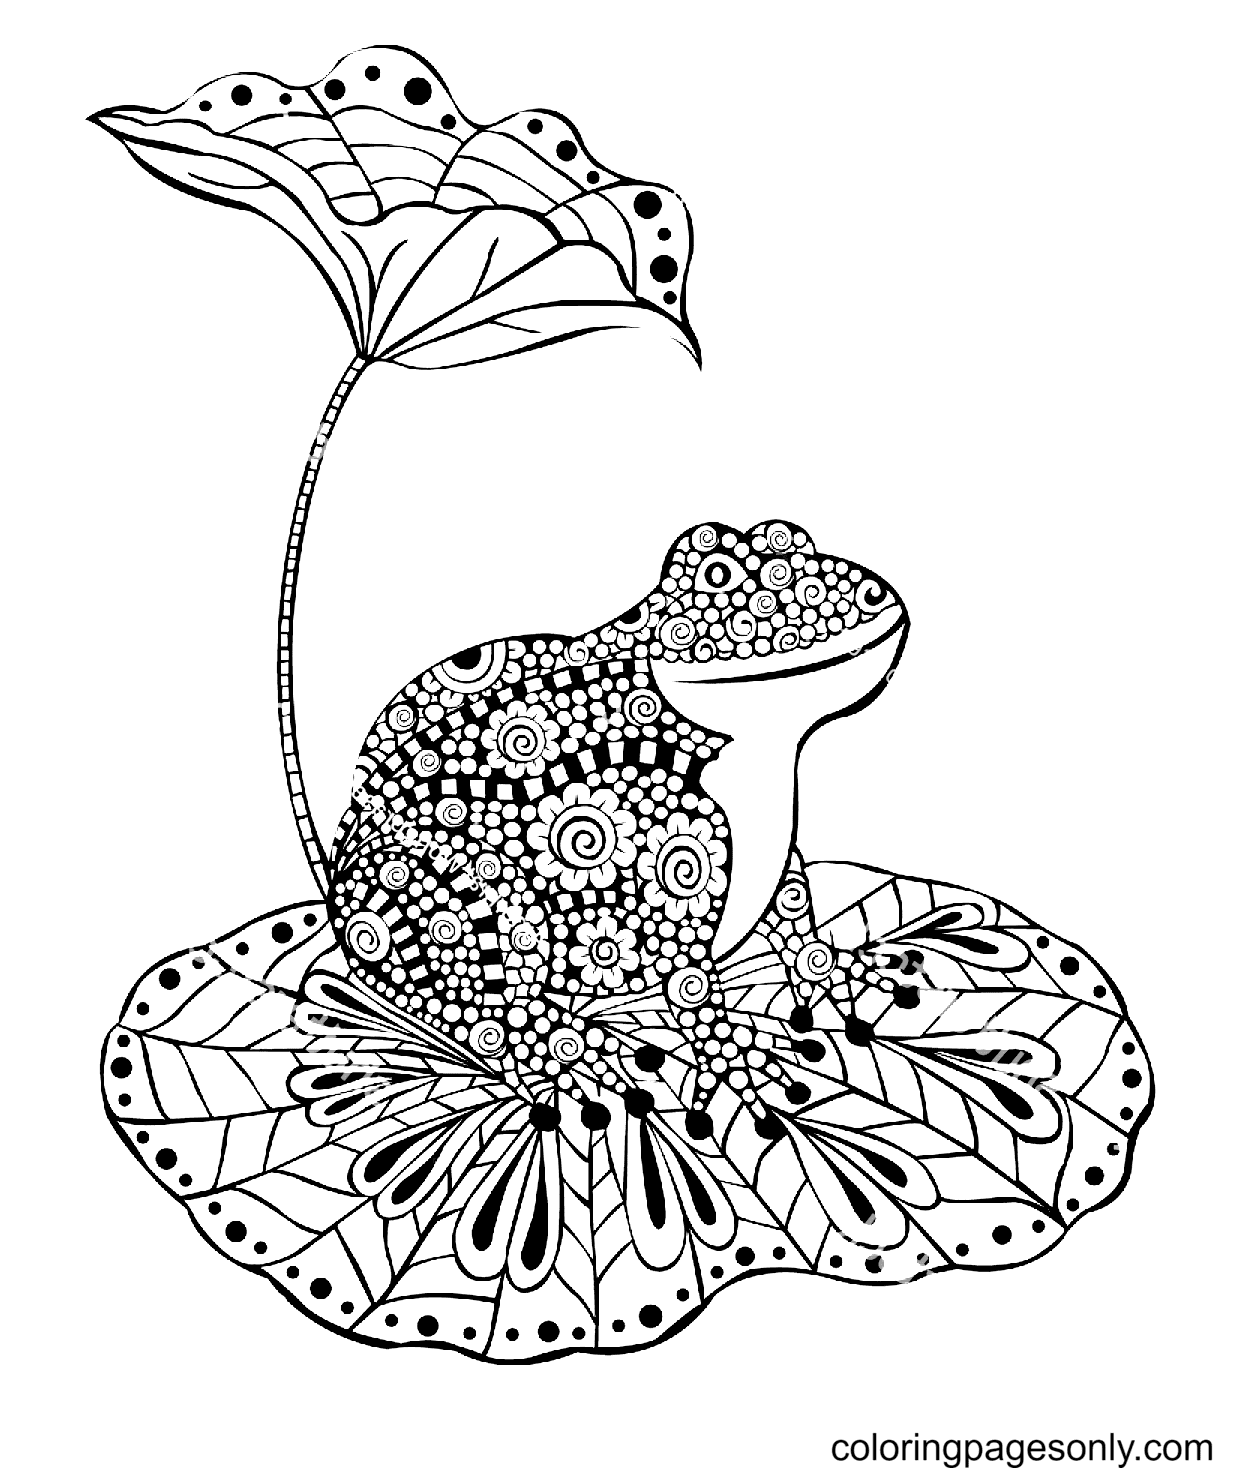 Frog Sitting On a Lotus Leaf Coloring Page